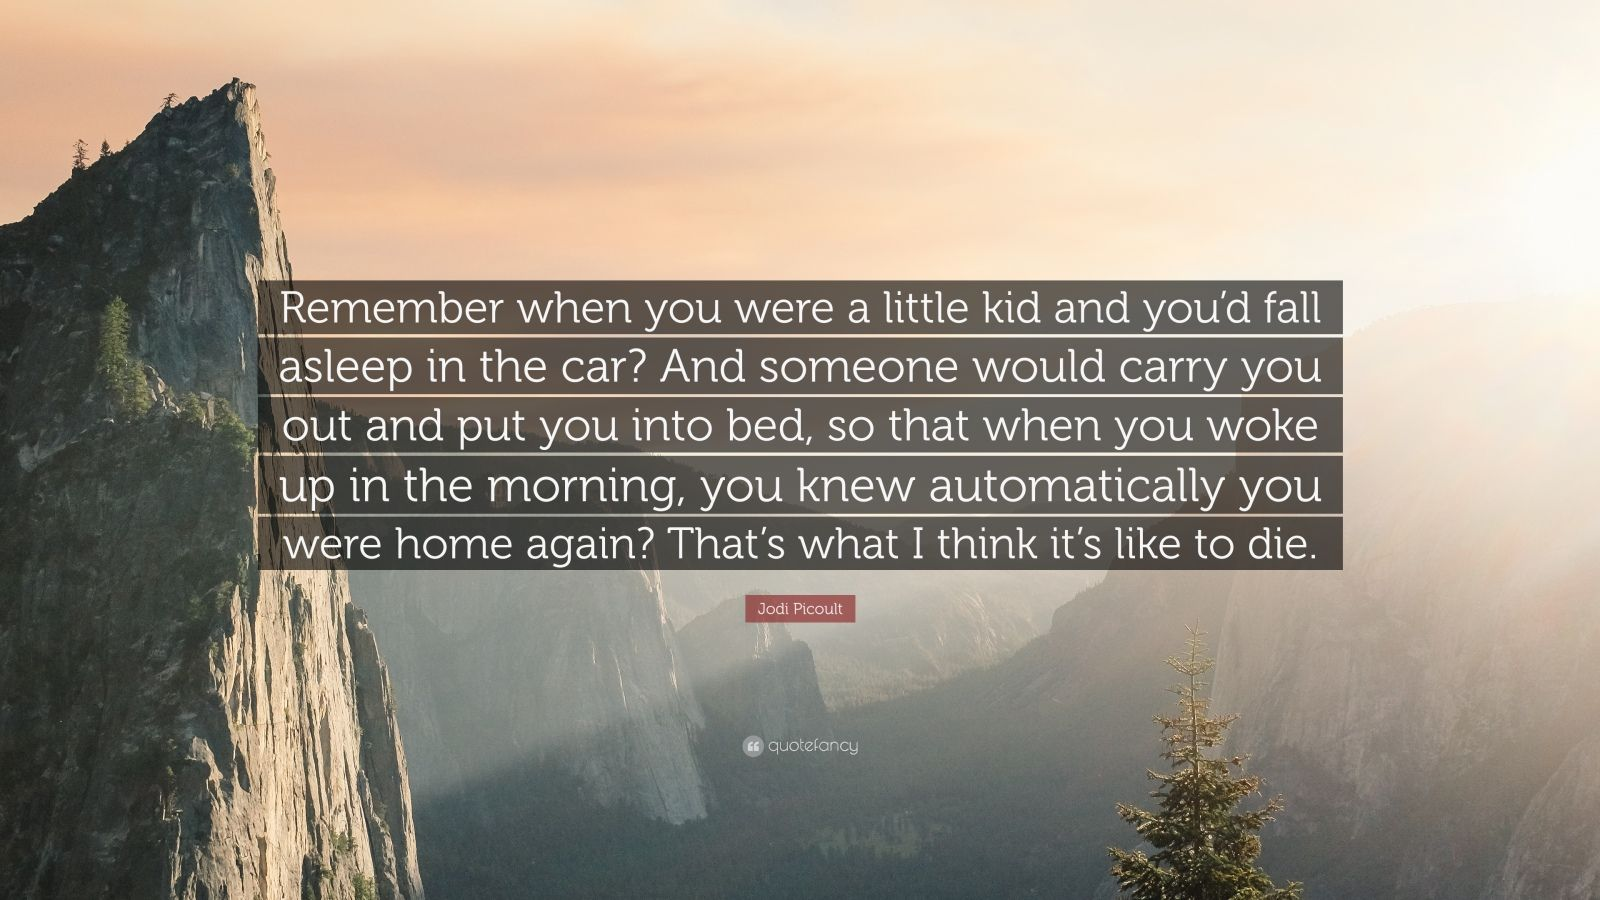 "Jodi Picoult Quote: ""Remember when you were a little kid and you'd fall asleep in the car? And someone would carry you out and put you into bed, so that when you woke up in the morning, you knew automatically you were home again? That's what I think it's like to die."""